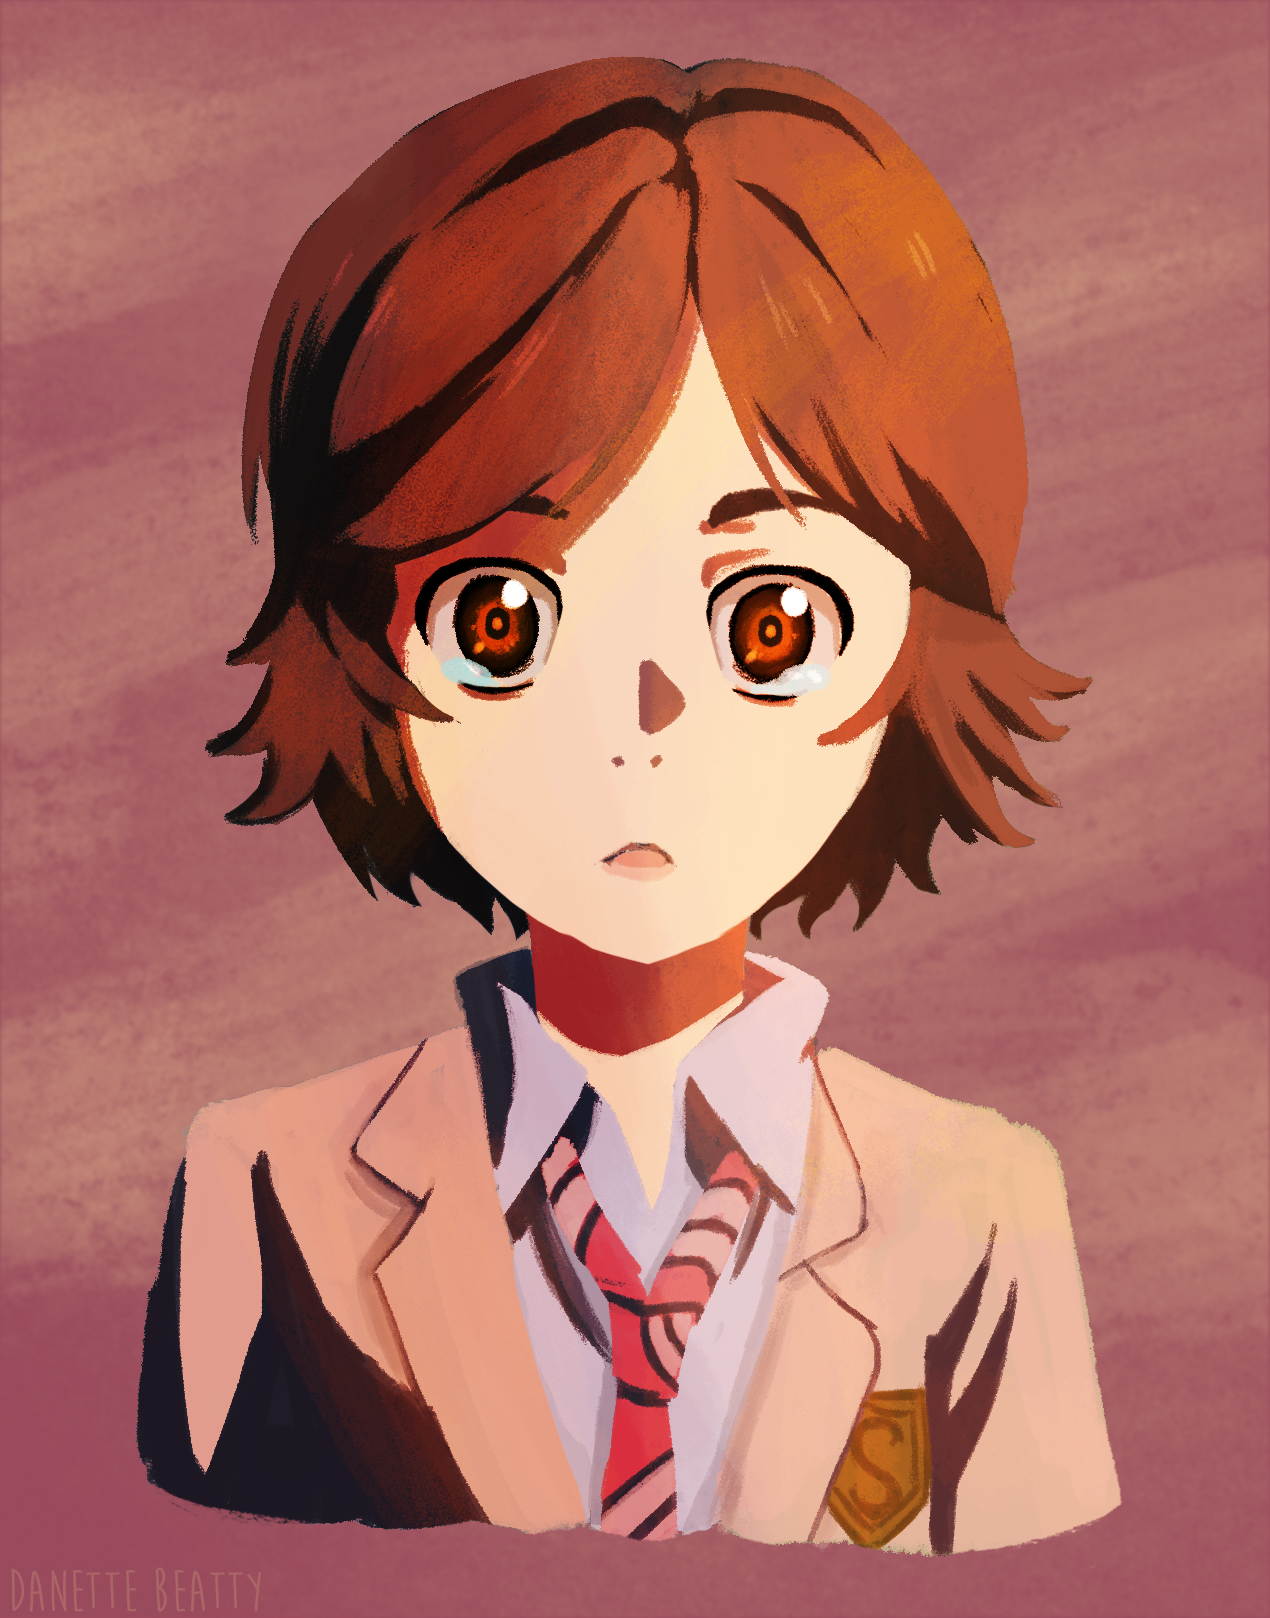 #165 is fan art for Your Lie in April. This show is taking my heart and putting it in a blender. It hurts so good.